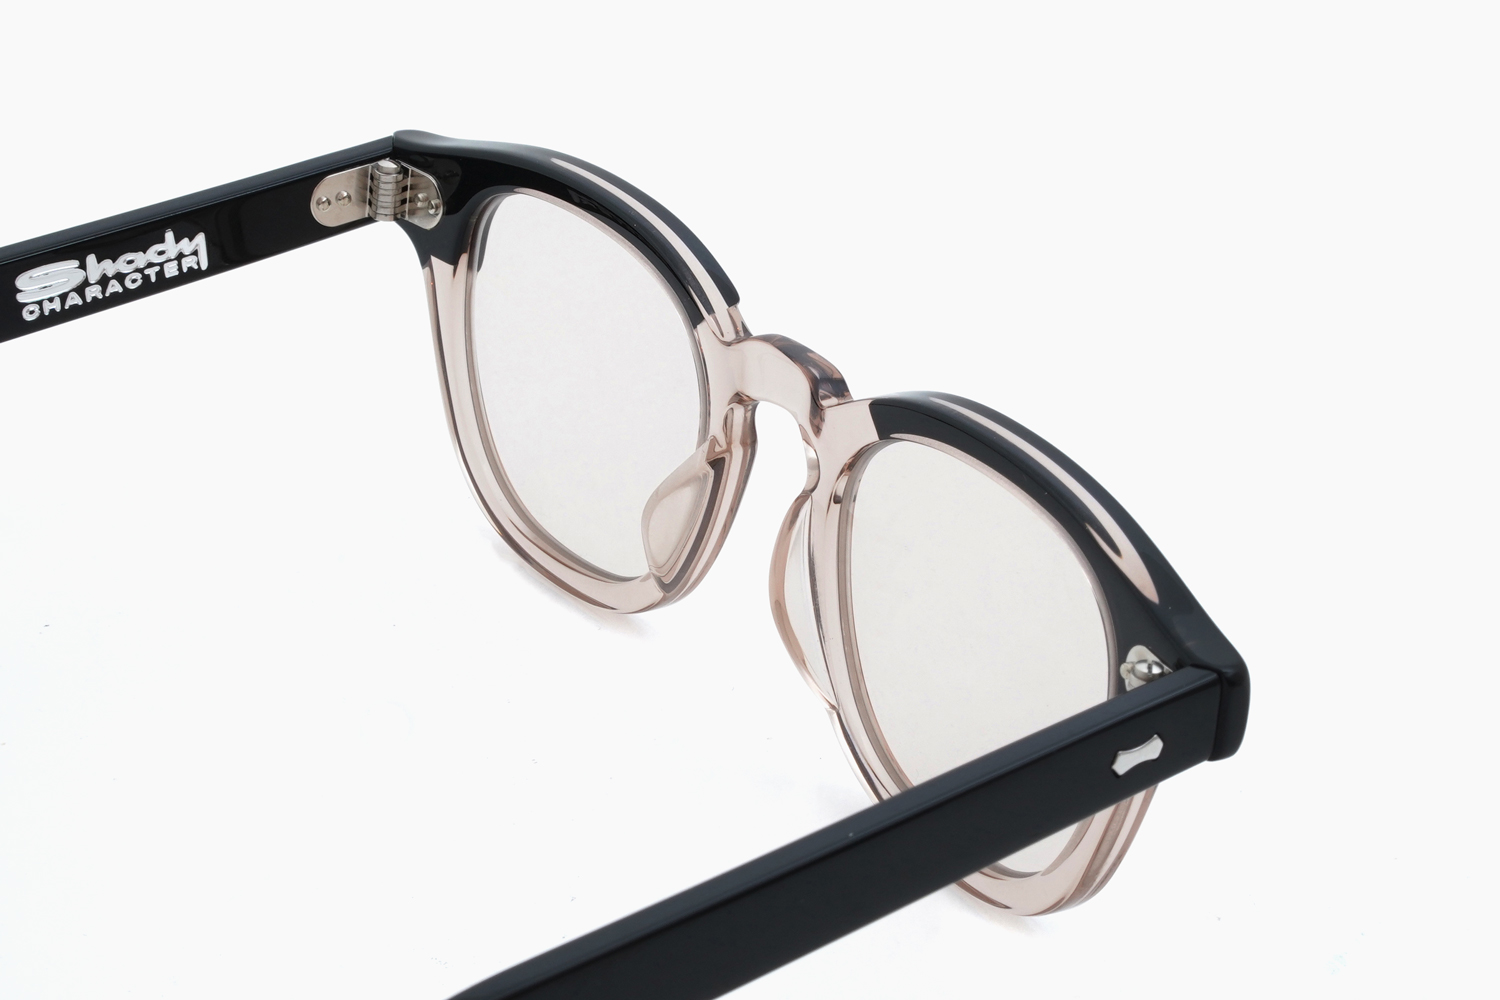 ARNIE 46 SG - Pink Champagne Brow / HM-06|Shady CHARACTER